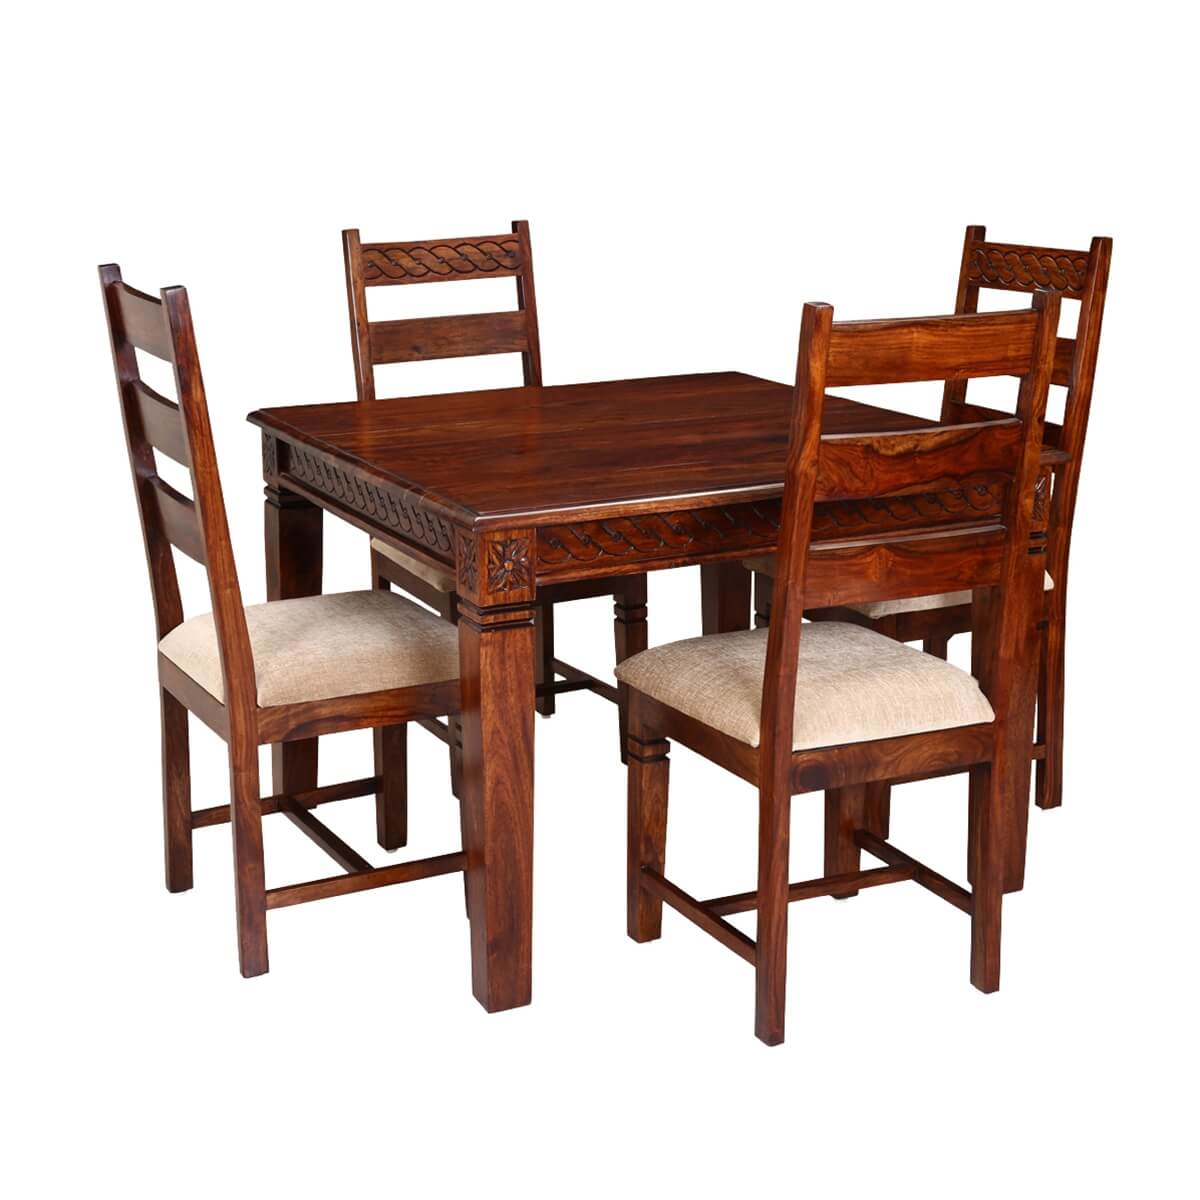 Solid Wood Table And Chairs: Handcrafted Solid Wood 5pc Square Dining Table And Chair Set